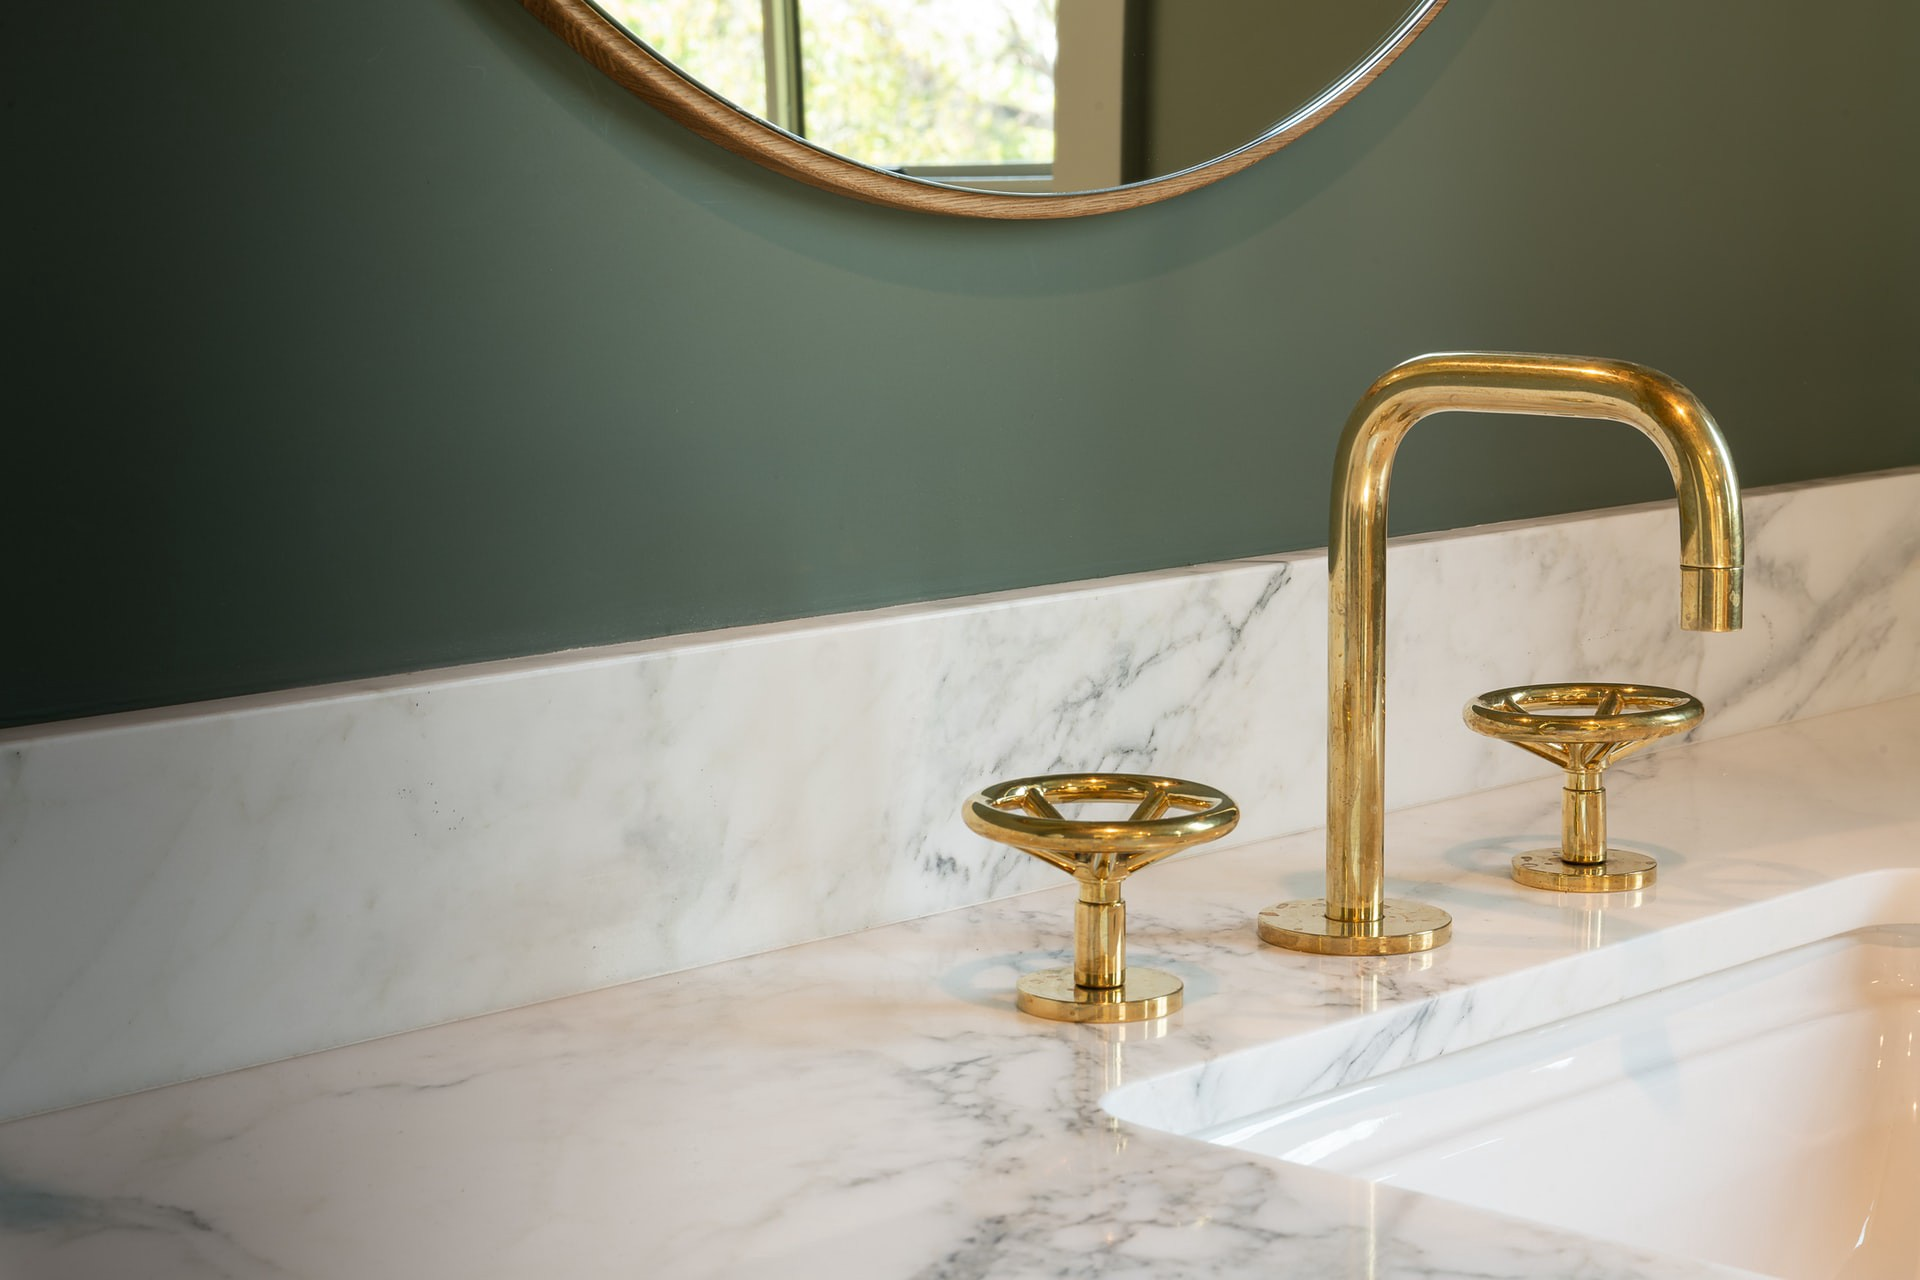 Sink with a marble countertop and gold faucet